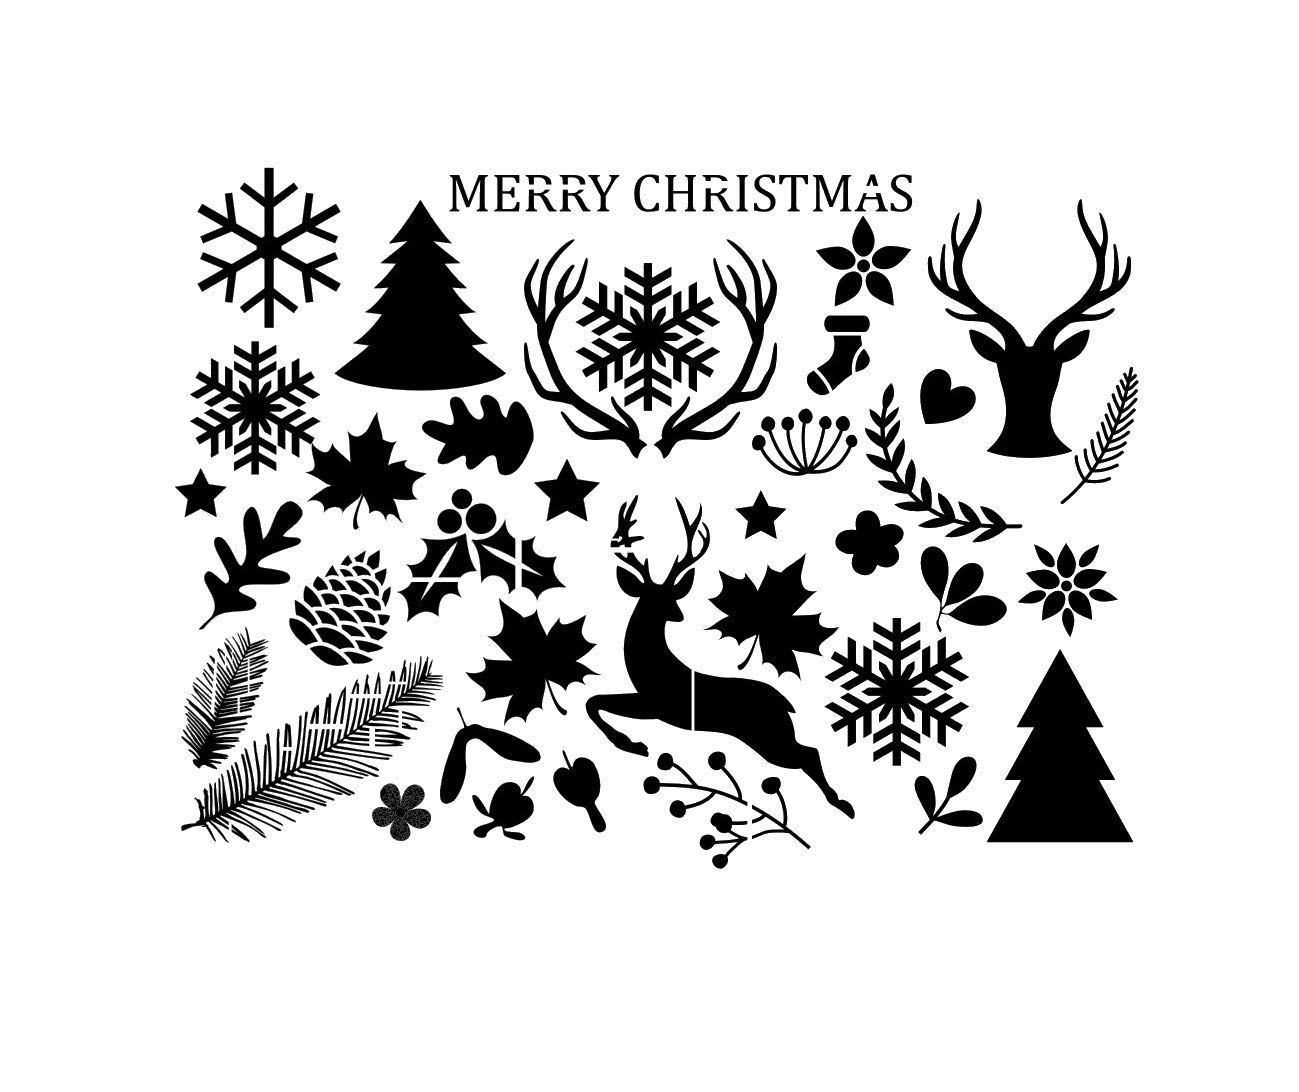 Set of Christmas Decoration Reausable Stencil Deer Tree Snow Flake Leaves / SNOW33 (PVC Reusable Stencil, A3 Size - 297 x 420 mm, 11.7 x 16.5 in) Artistic Sponge